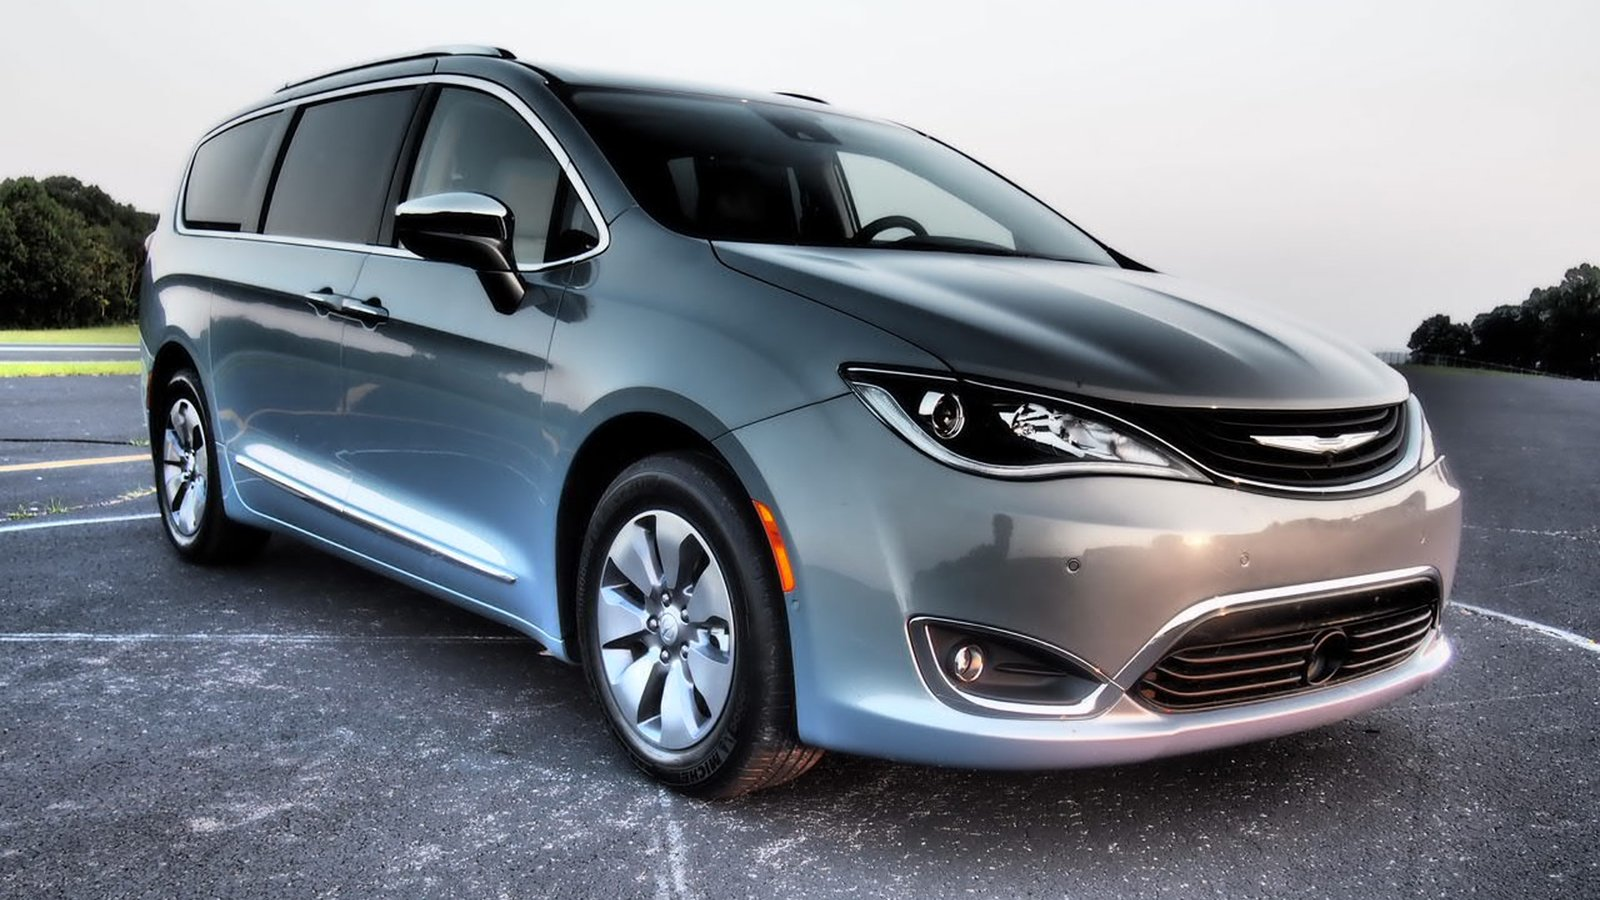 2018 chrysler pacifica hybrid driven review top speed. Black Bedroom Furniture Sets. Home Design Ideas